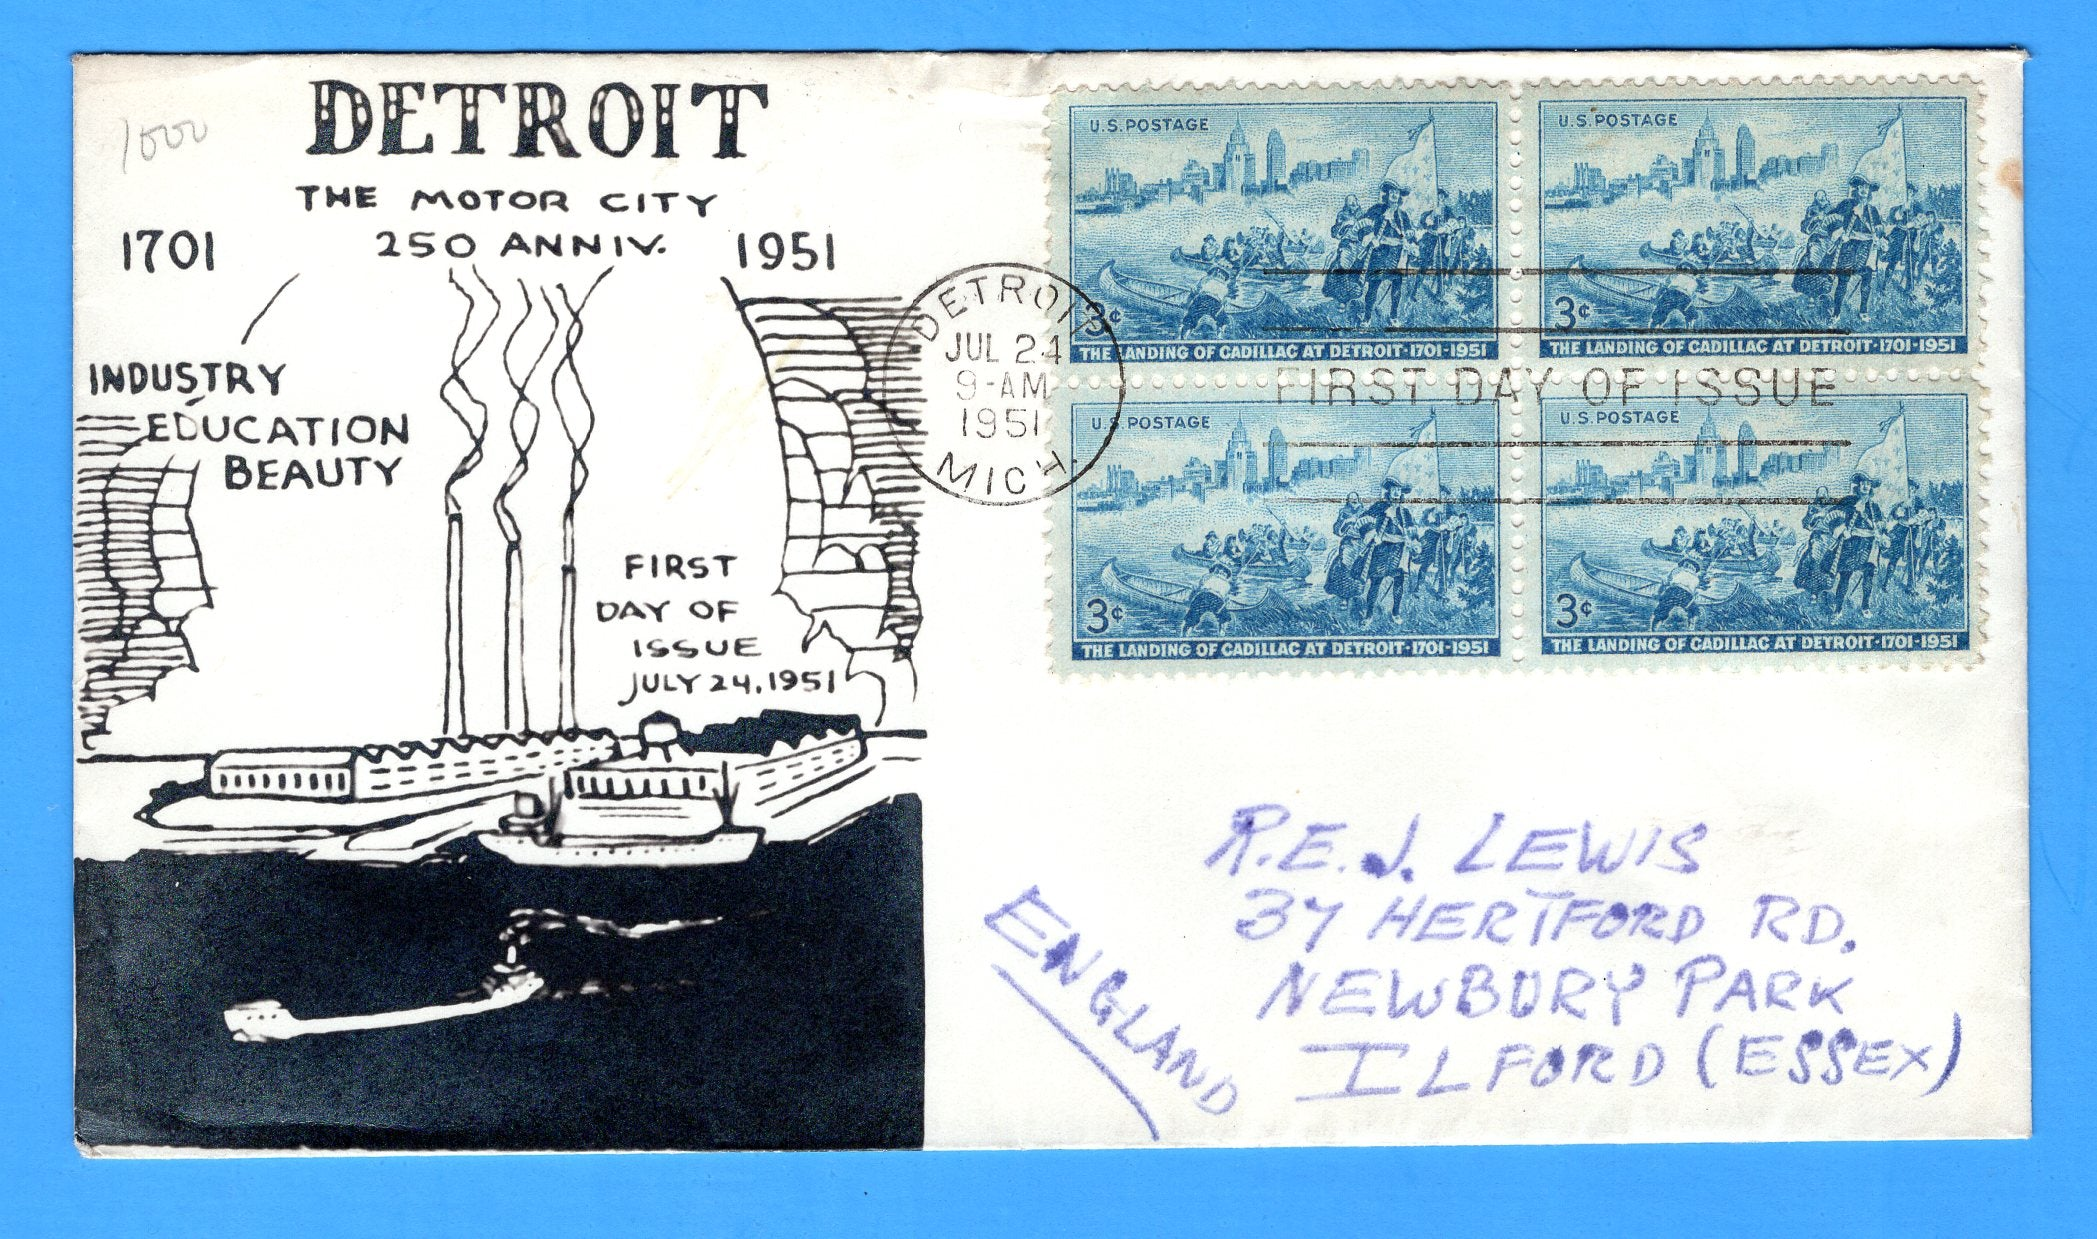 Scott 1000 3c Landing of Cadillac at Detroit Photo Cachet First Day Cover - by Eric Lewis - Very Rare - Only Three Known Copies